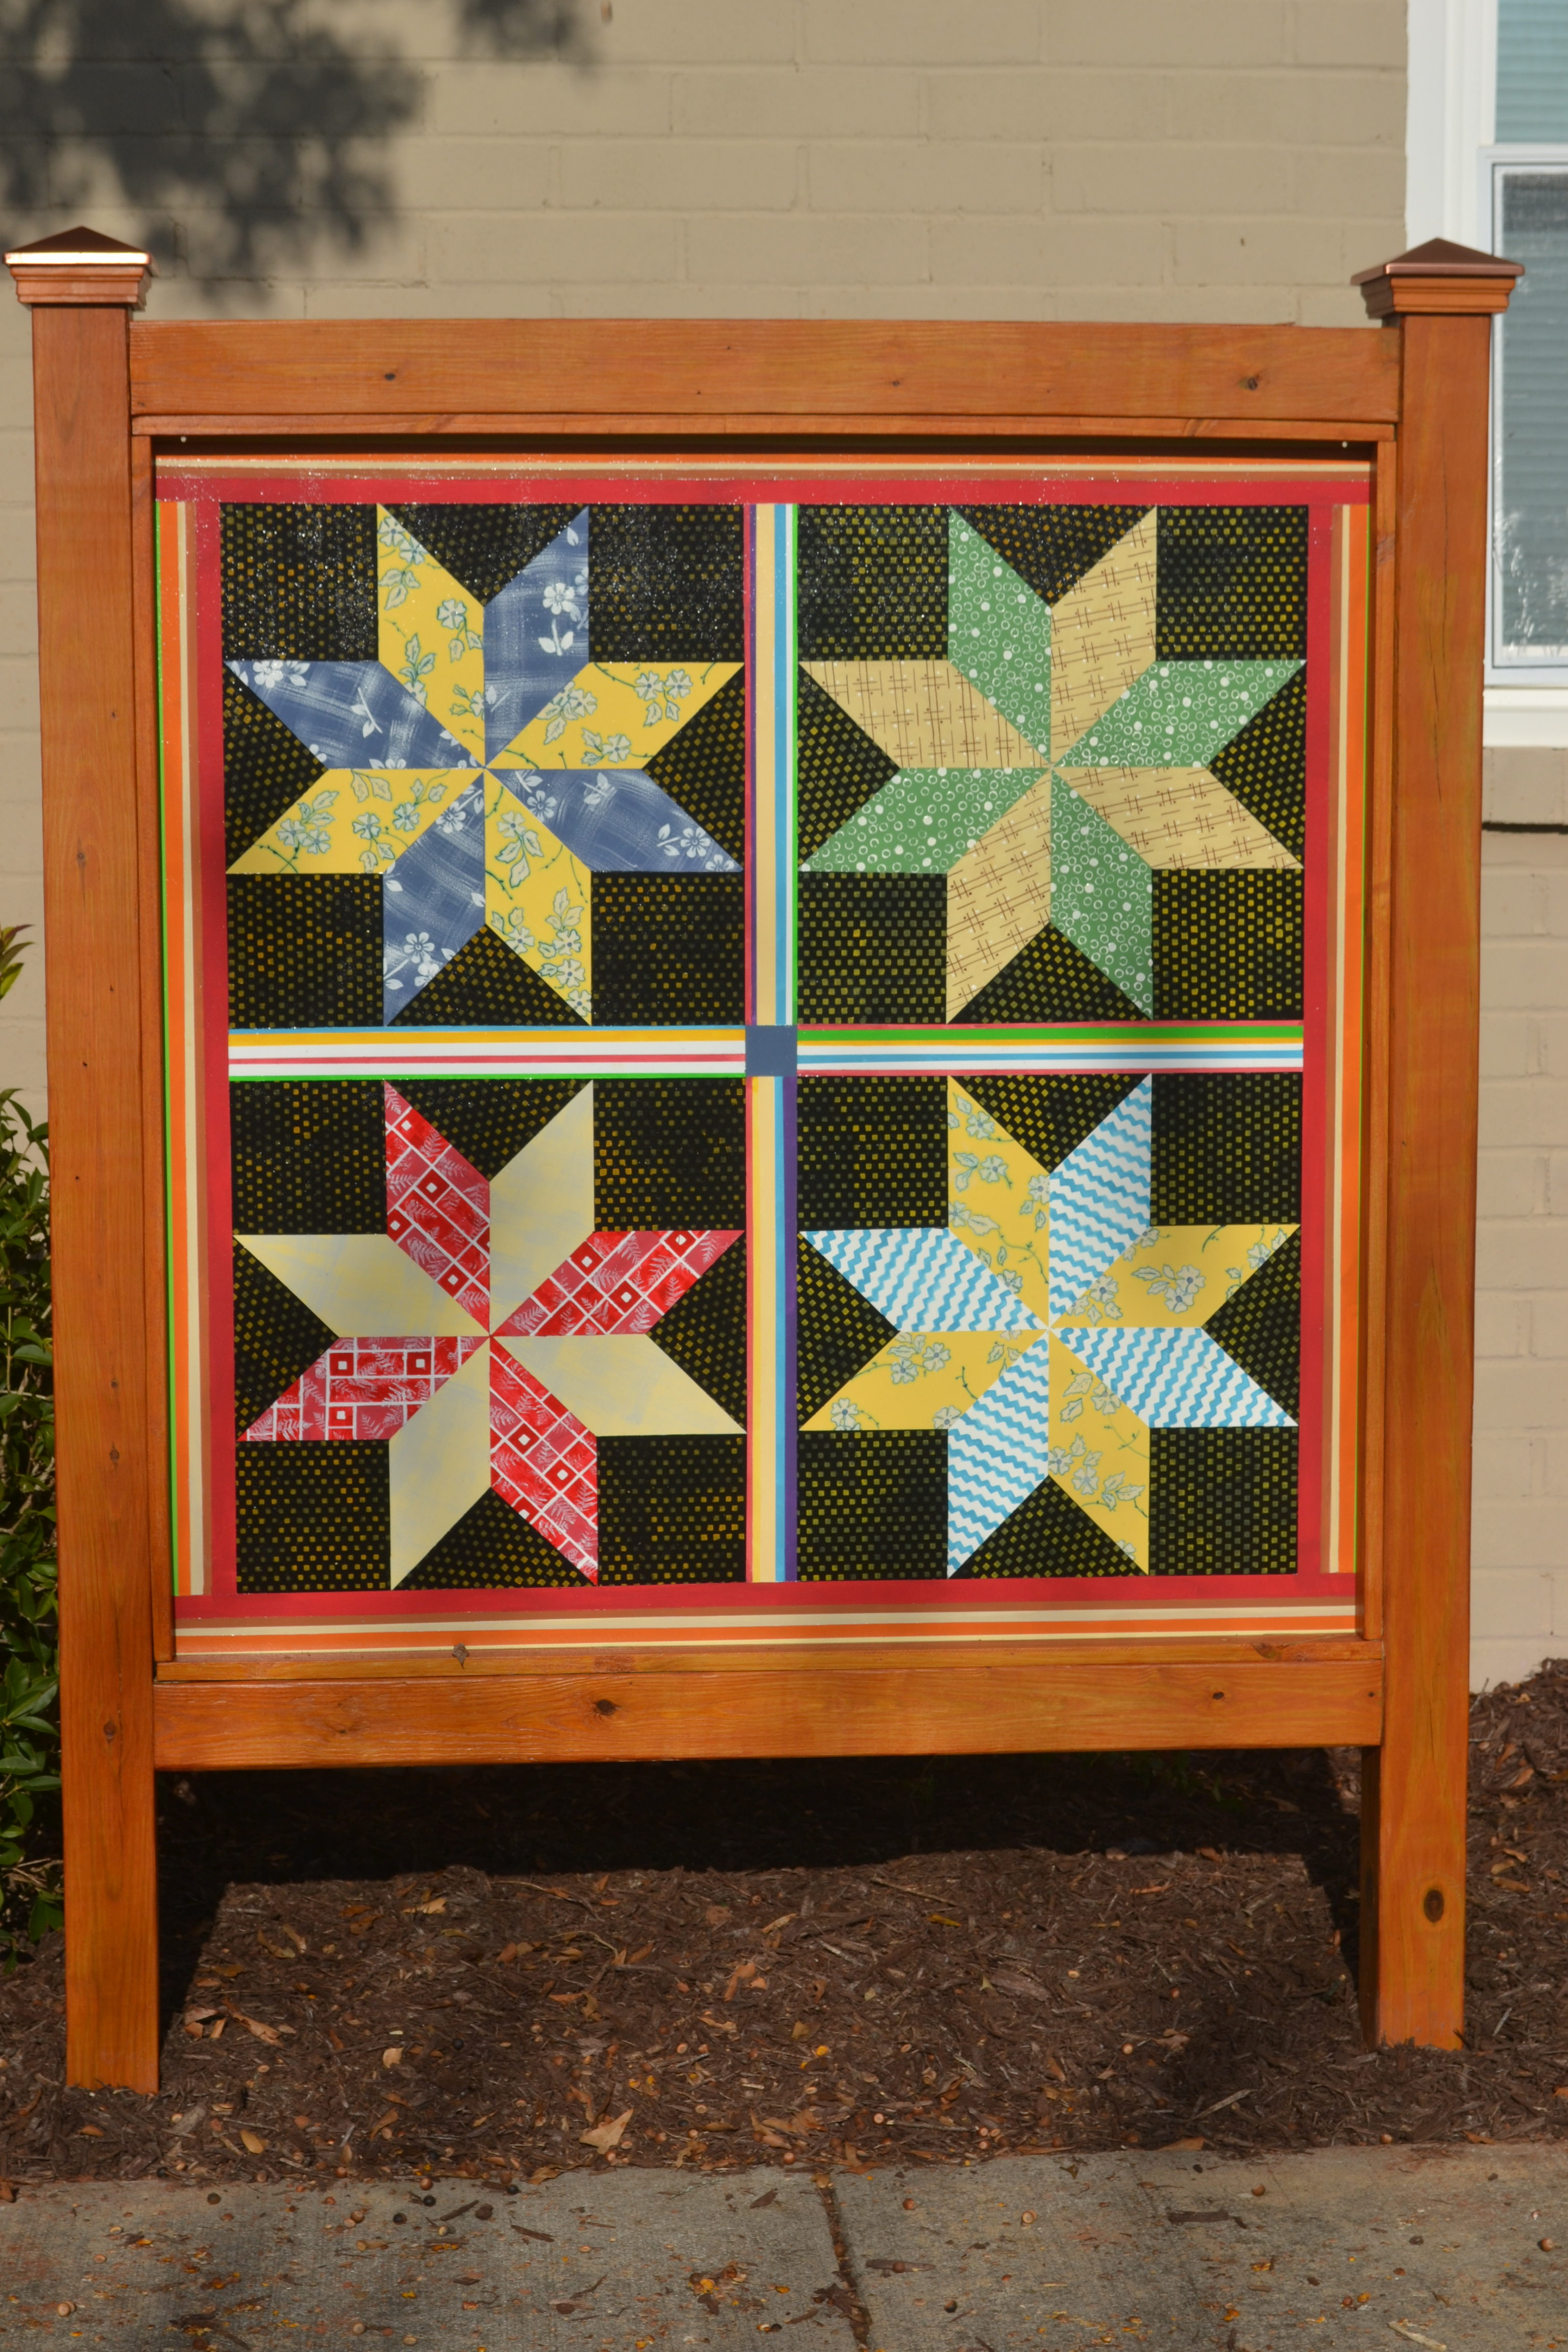 smith program img show b and marie august tell quilts rose quilt hofquiltguild